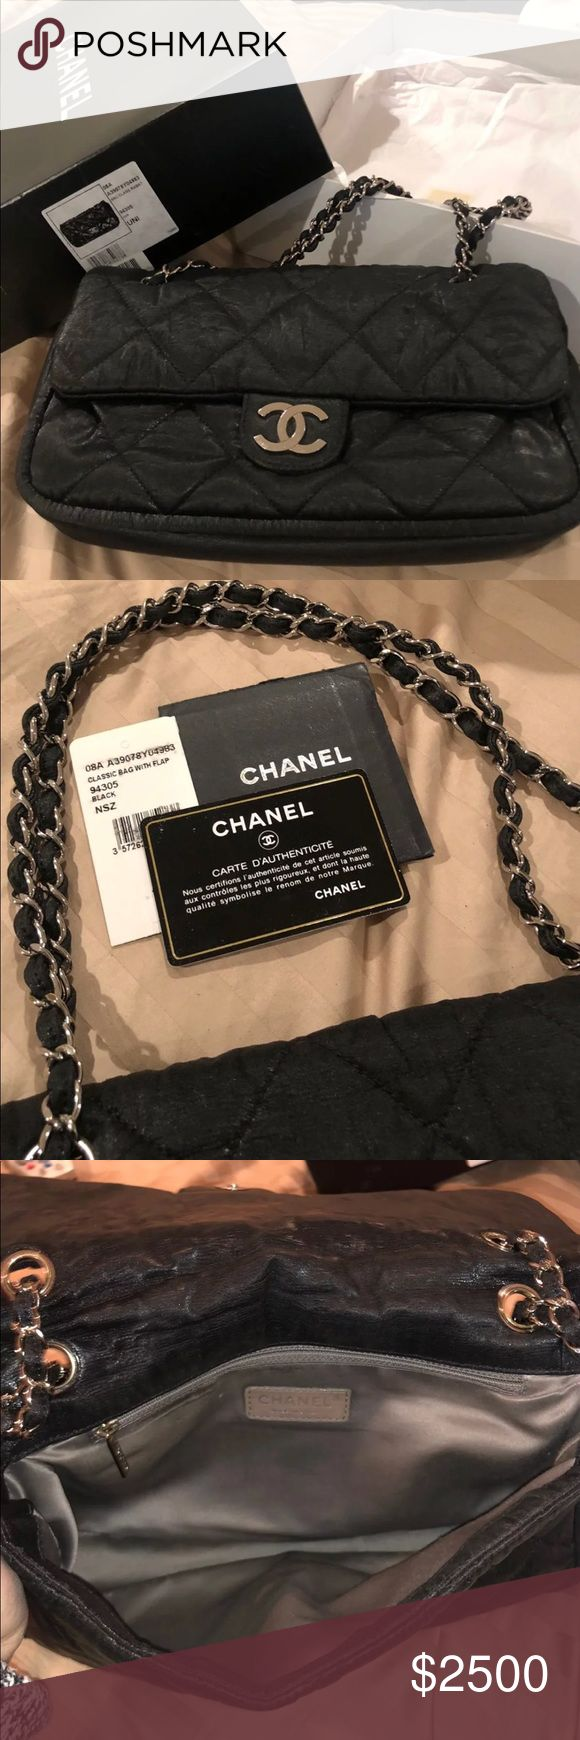 Chanel jumbo flap quilted Le Marais medium This is a 100% authentic classic jumbo flap quilted Le Marais medium bag. Great condition. I have all the tags and duffle bag and box included. Awesome bag. Dimensions are 12L 7H 3W CHANEL Bags Shoulder Bags